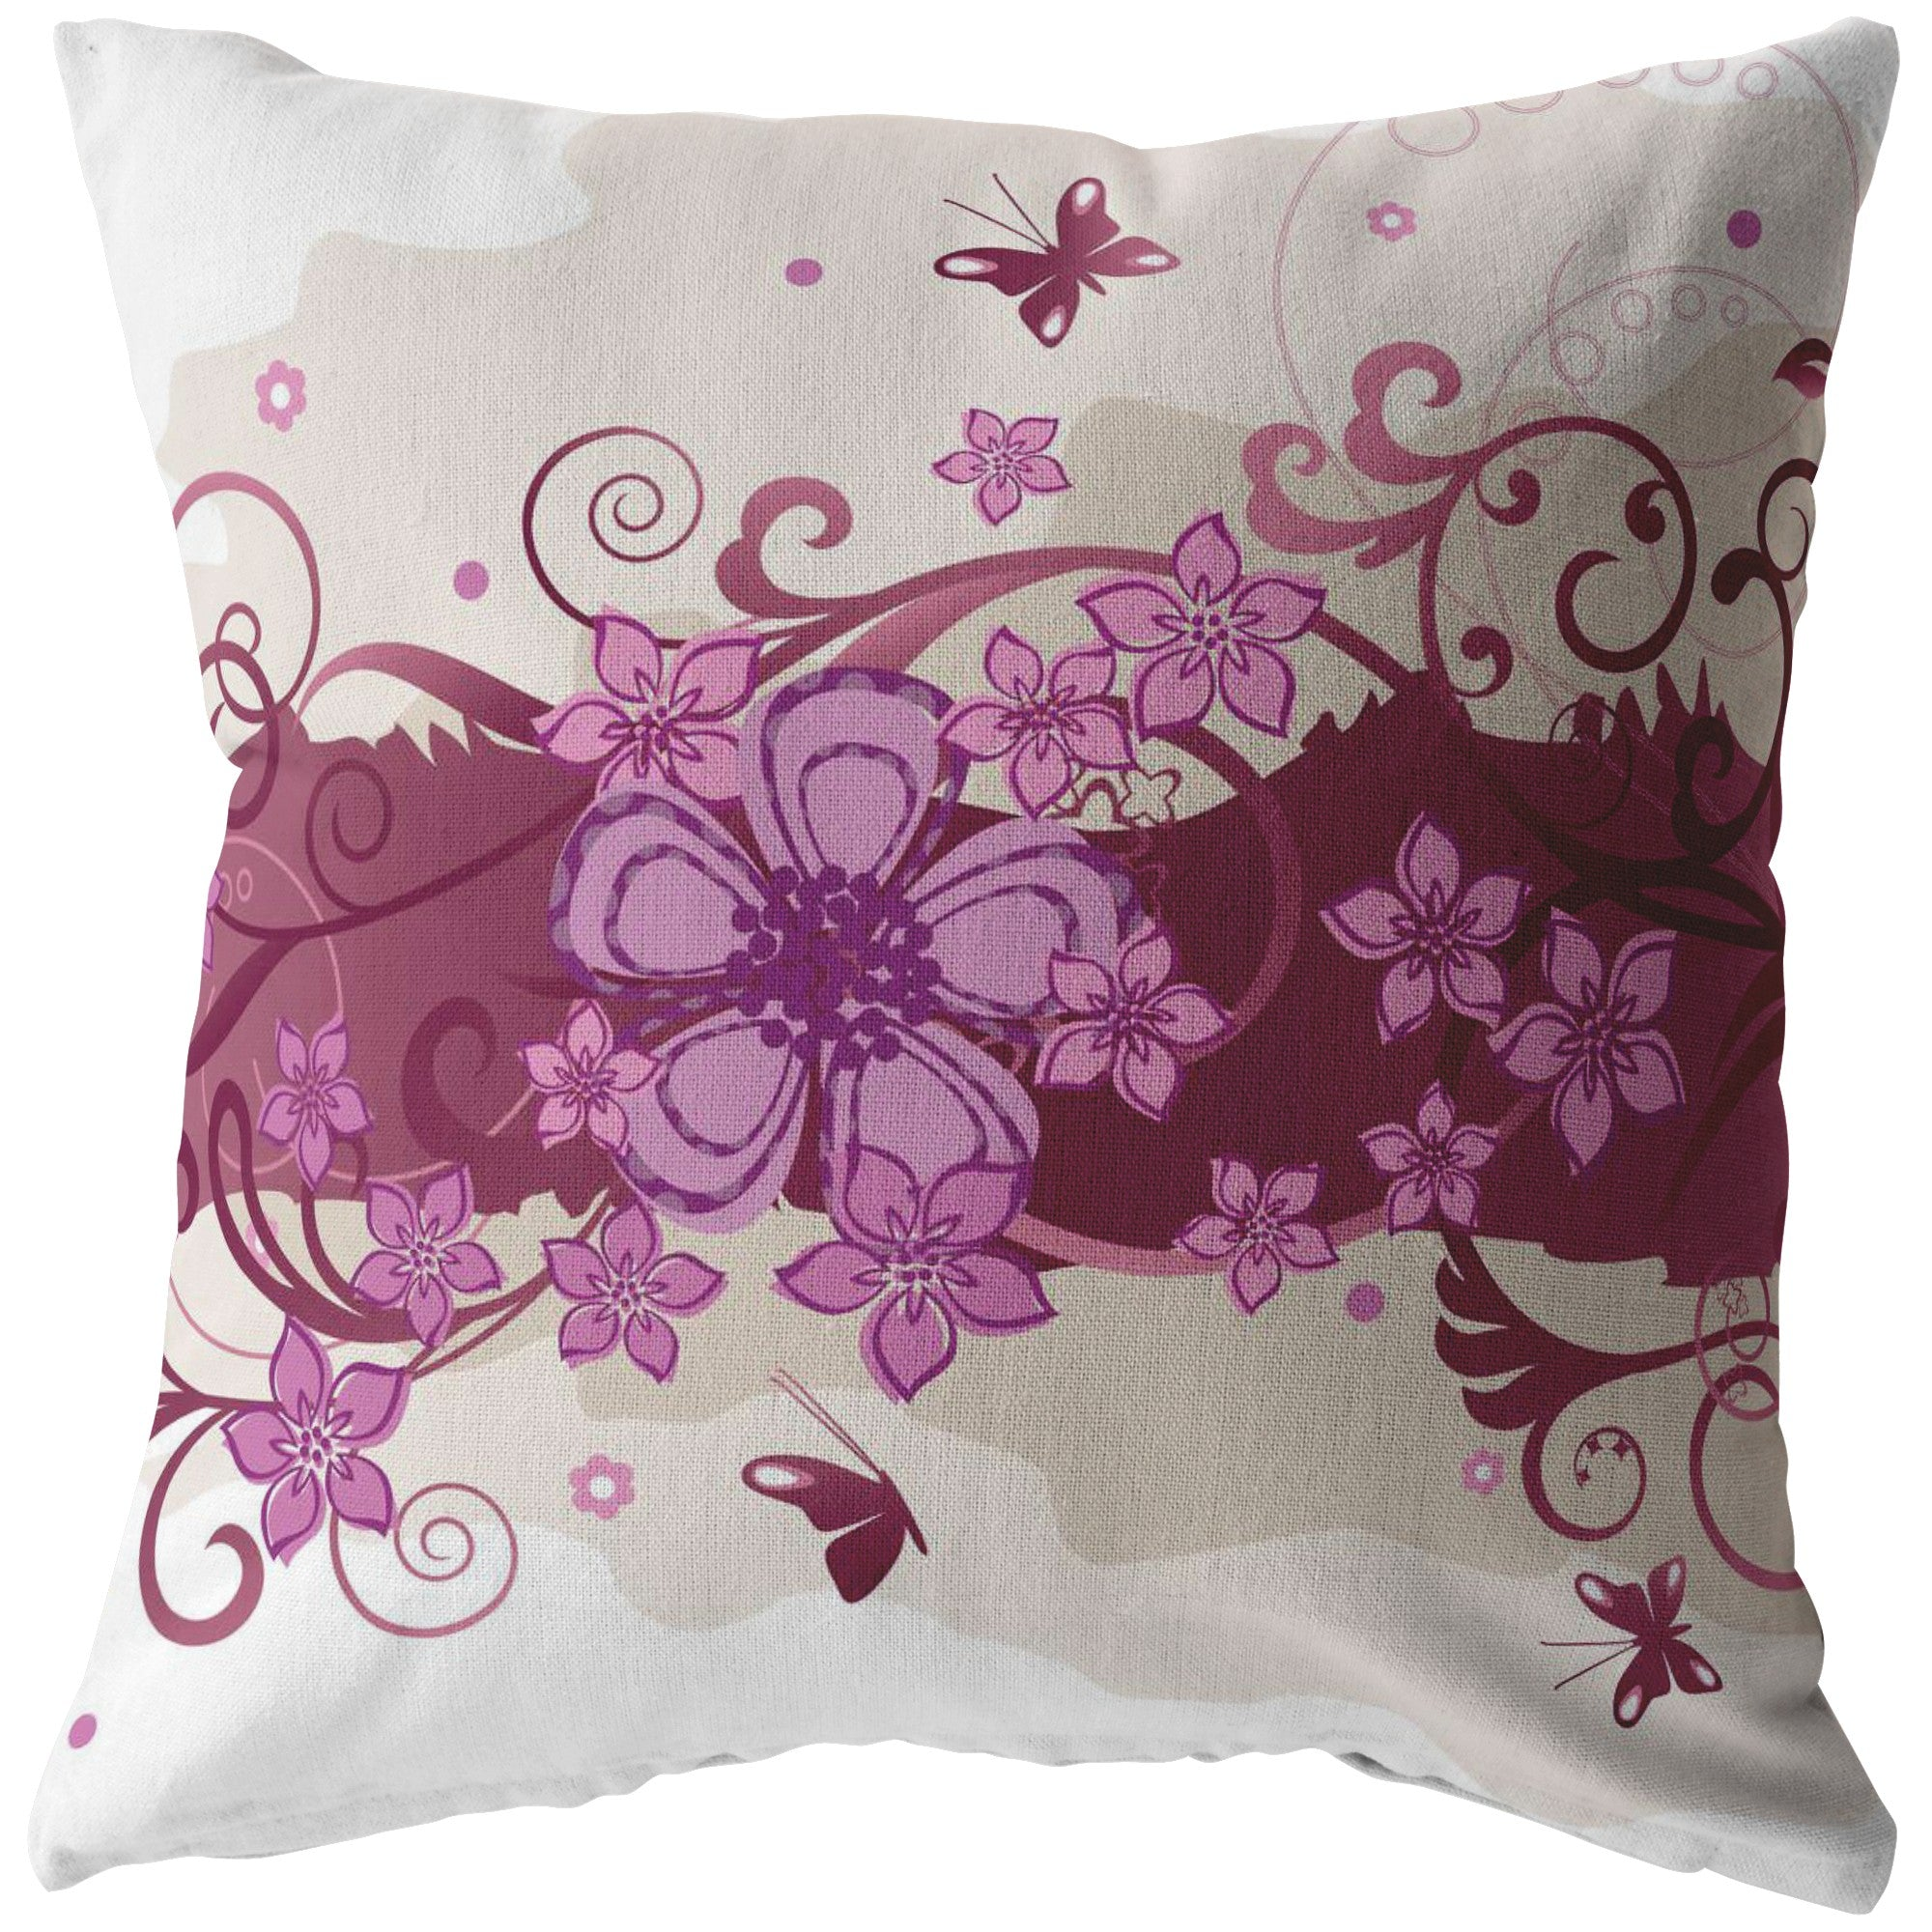 Purple Flowers and Butterflies Pillow - The Unchargeables